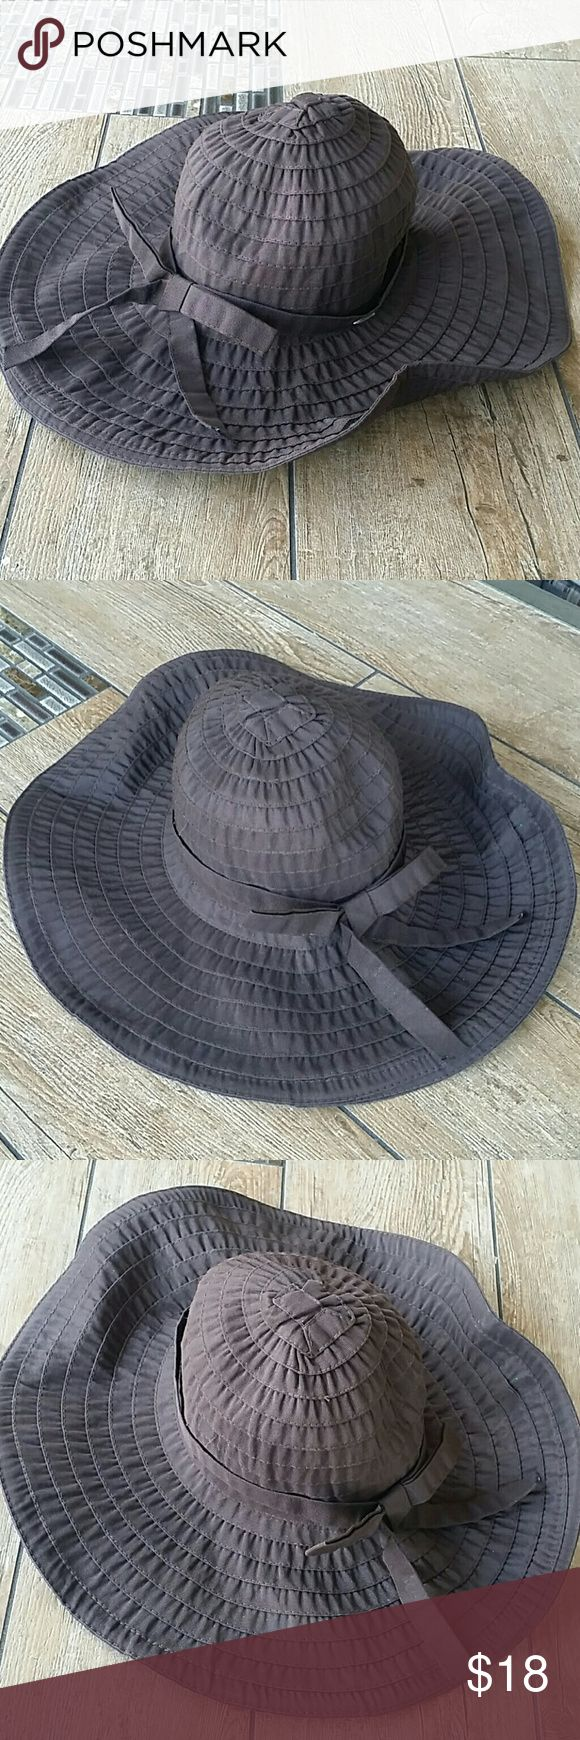 SCALA WIDE BRIM HAT Chocolate brown wide brim hat 50+ UPF NO rips or stains Smoke free home Scala Accessories Hats